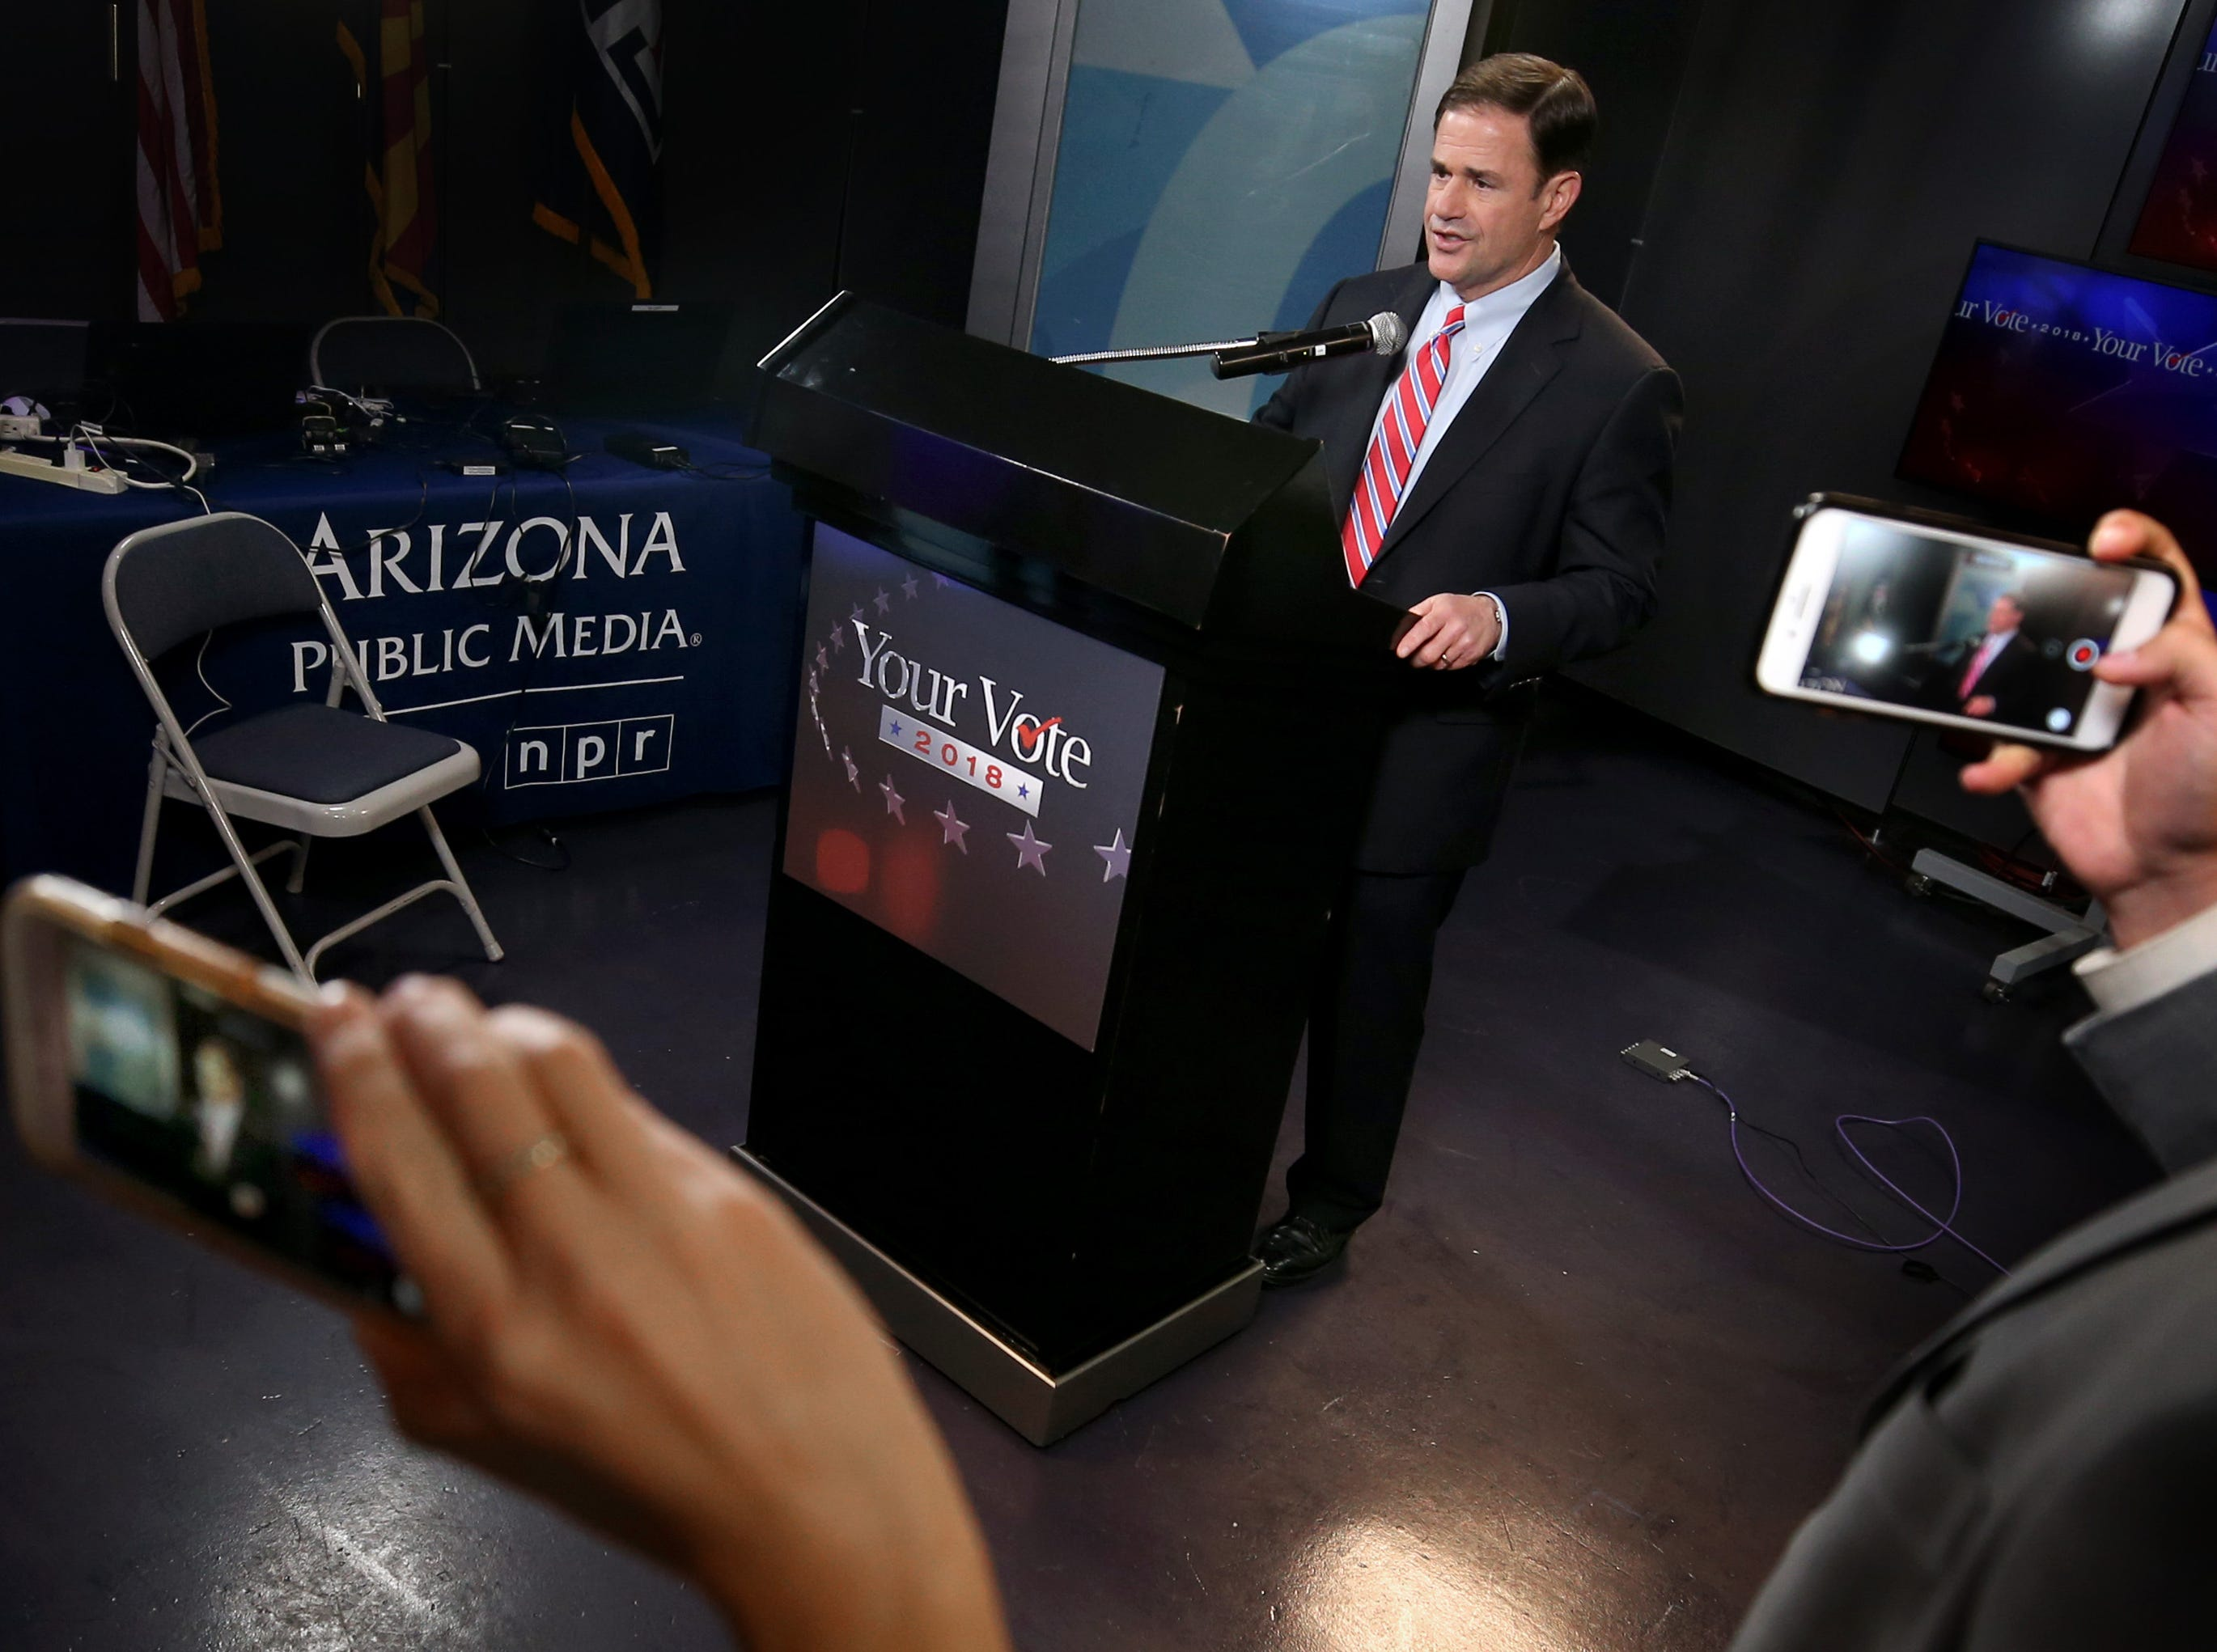 Gubernatorial candidate Republican Doug Ducey gives a few remarks as staffers get cell phone videos, after a televised debate in the AZPM studios, Tuesday, Sept. 25, 2018, in Tucson.